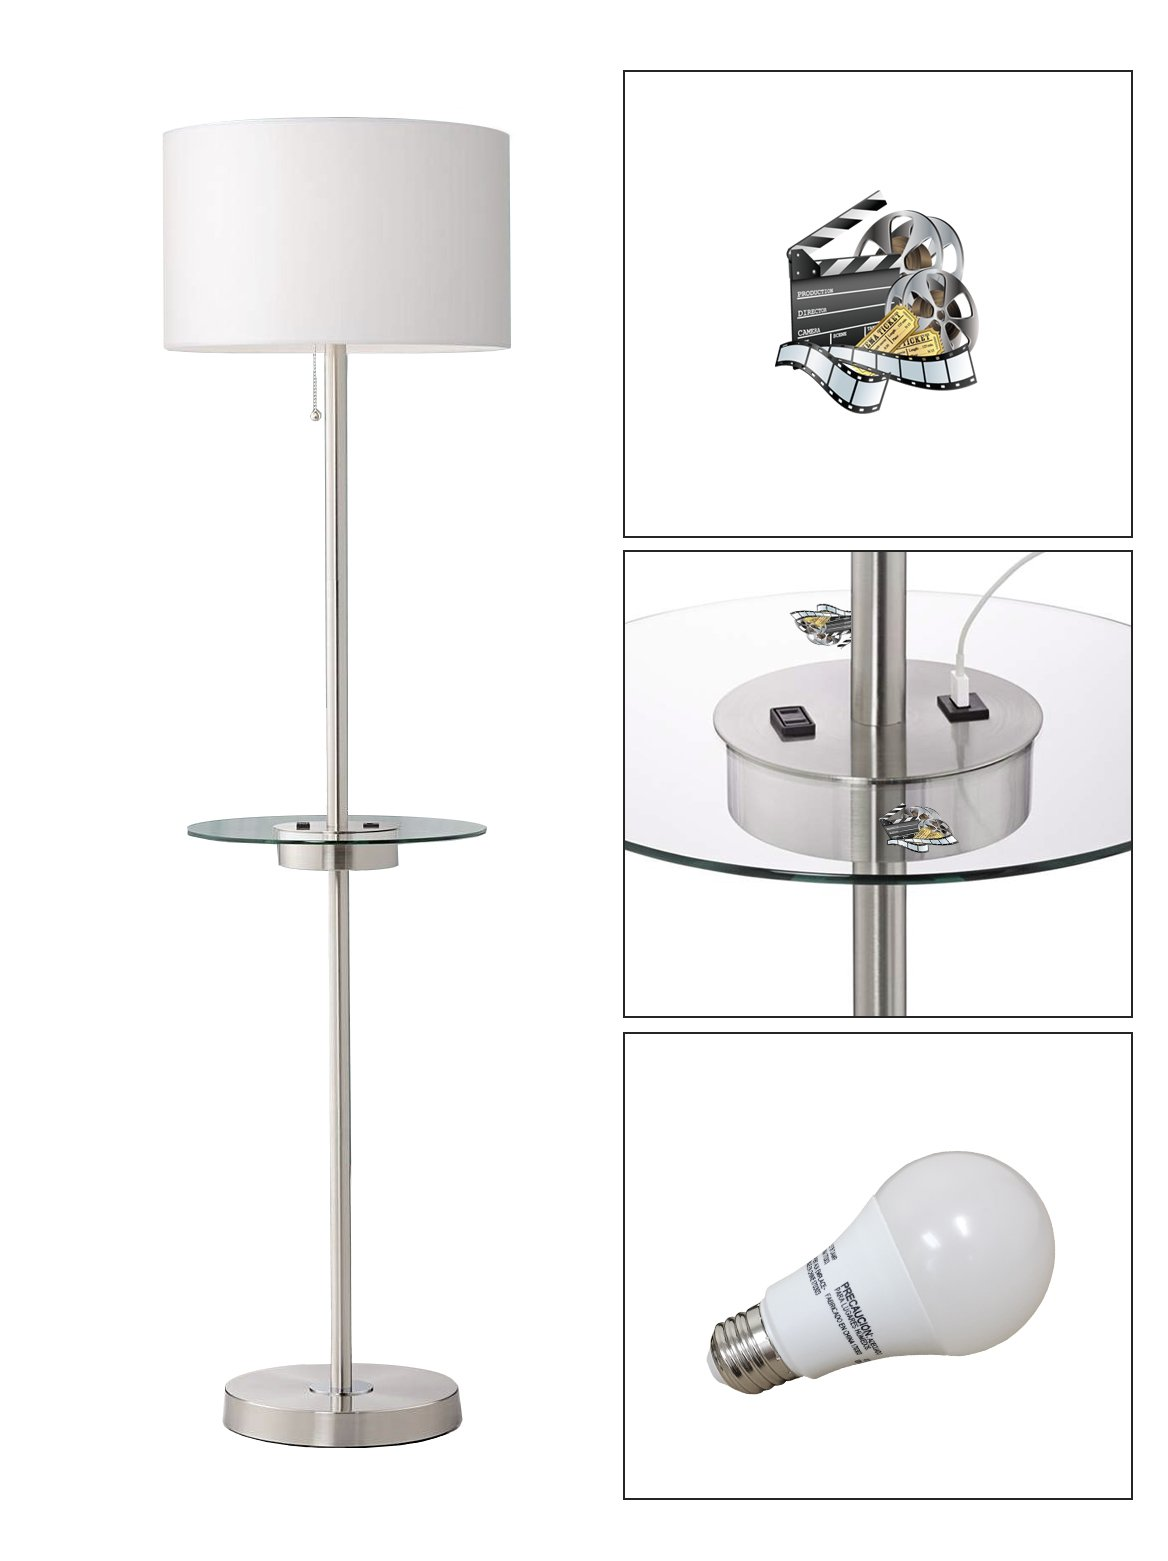 Satin Steel Floor Lamp with Table, USB, Electrical Outlet Featuring Your Favorite Novelty Themed Logo - FREE LED BULB INCLUDED (Movie Reel)